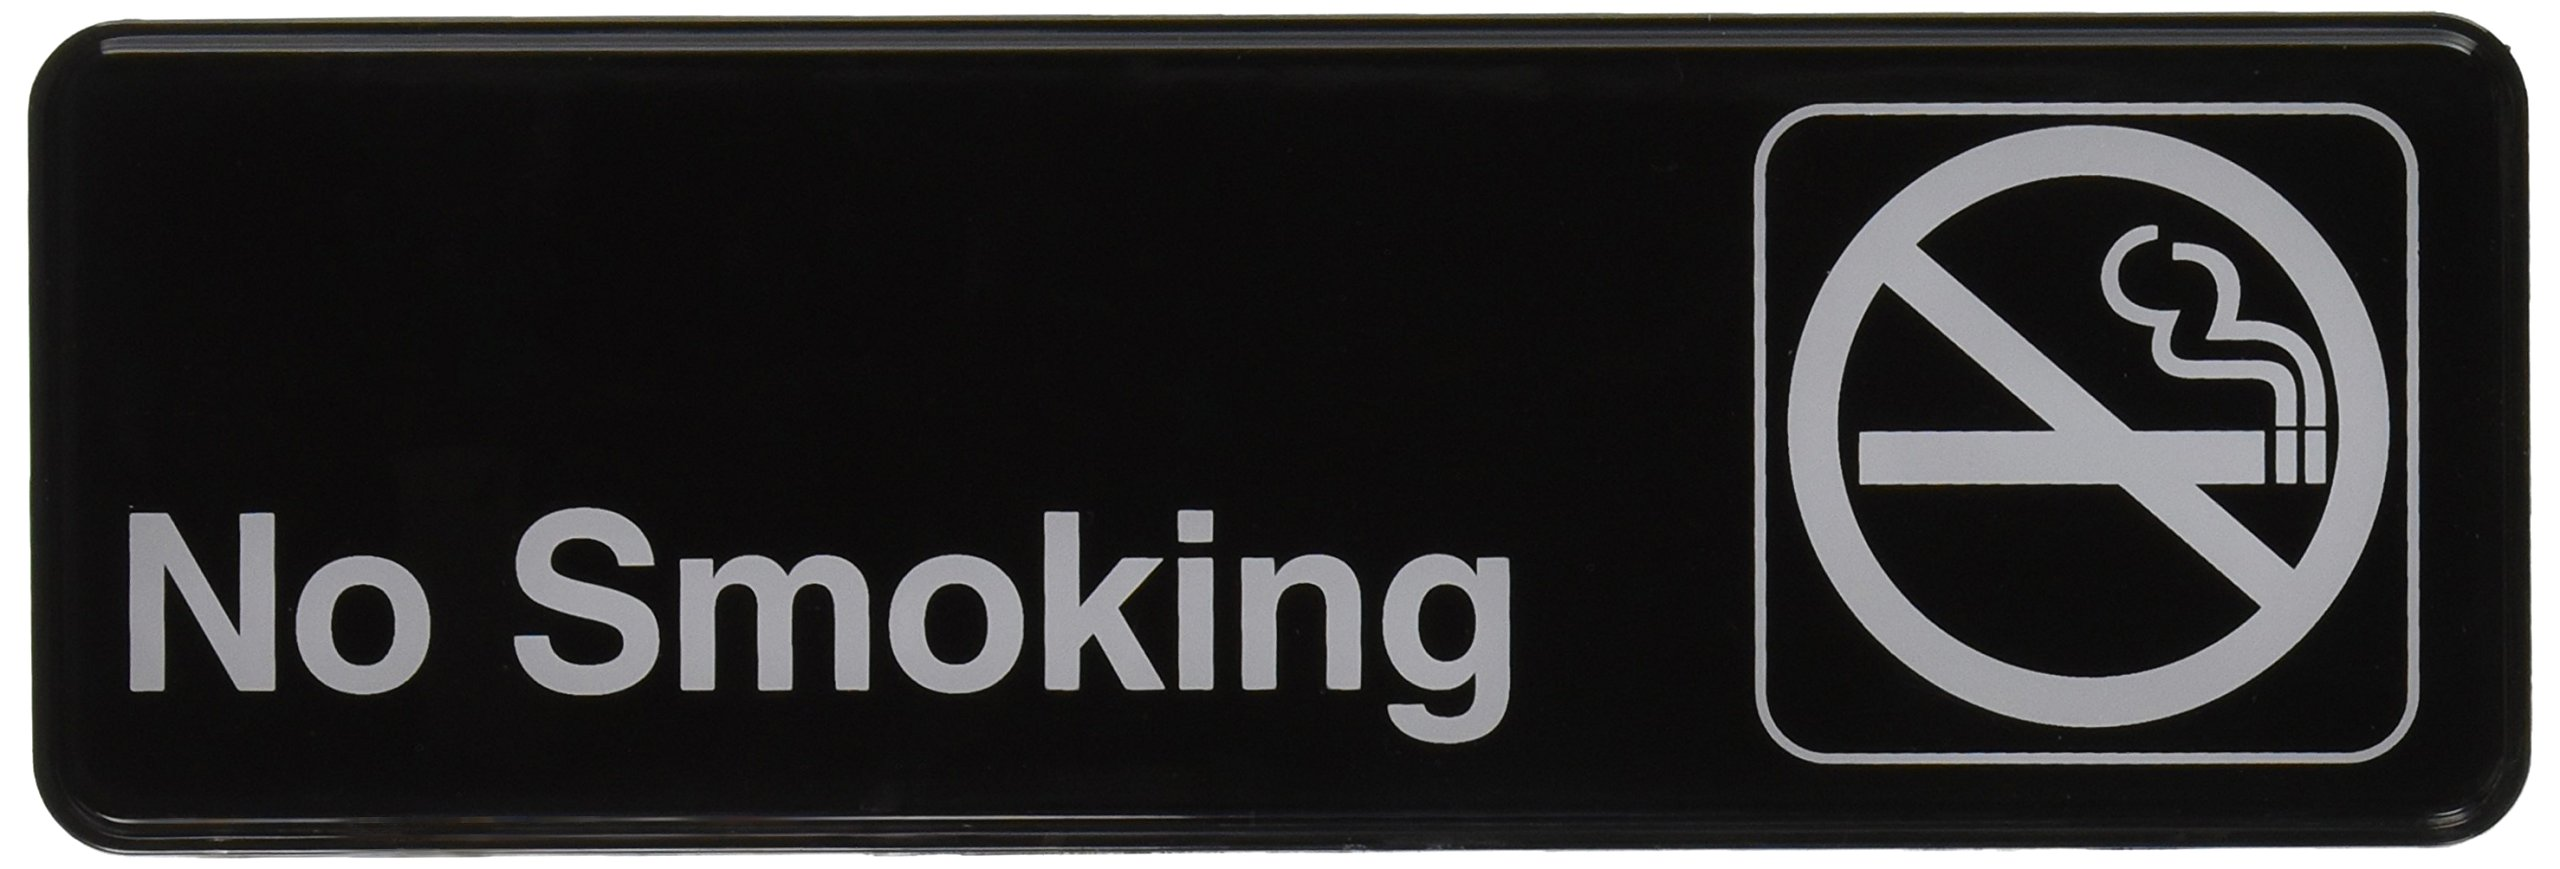 Winco SGN-310 Sign, 3-Inch by 9-Inch, No Smoking